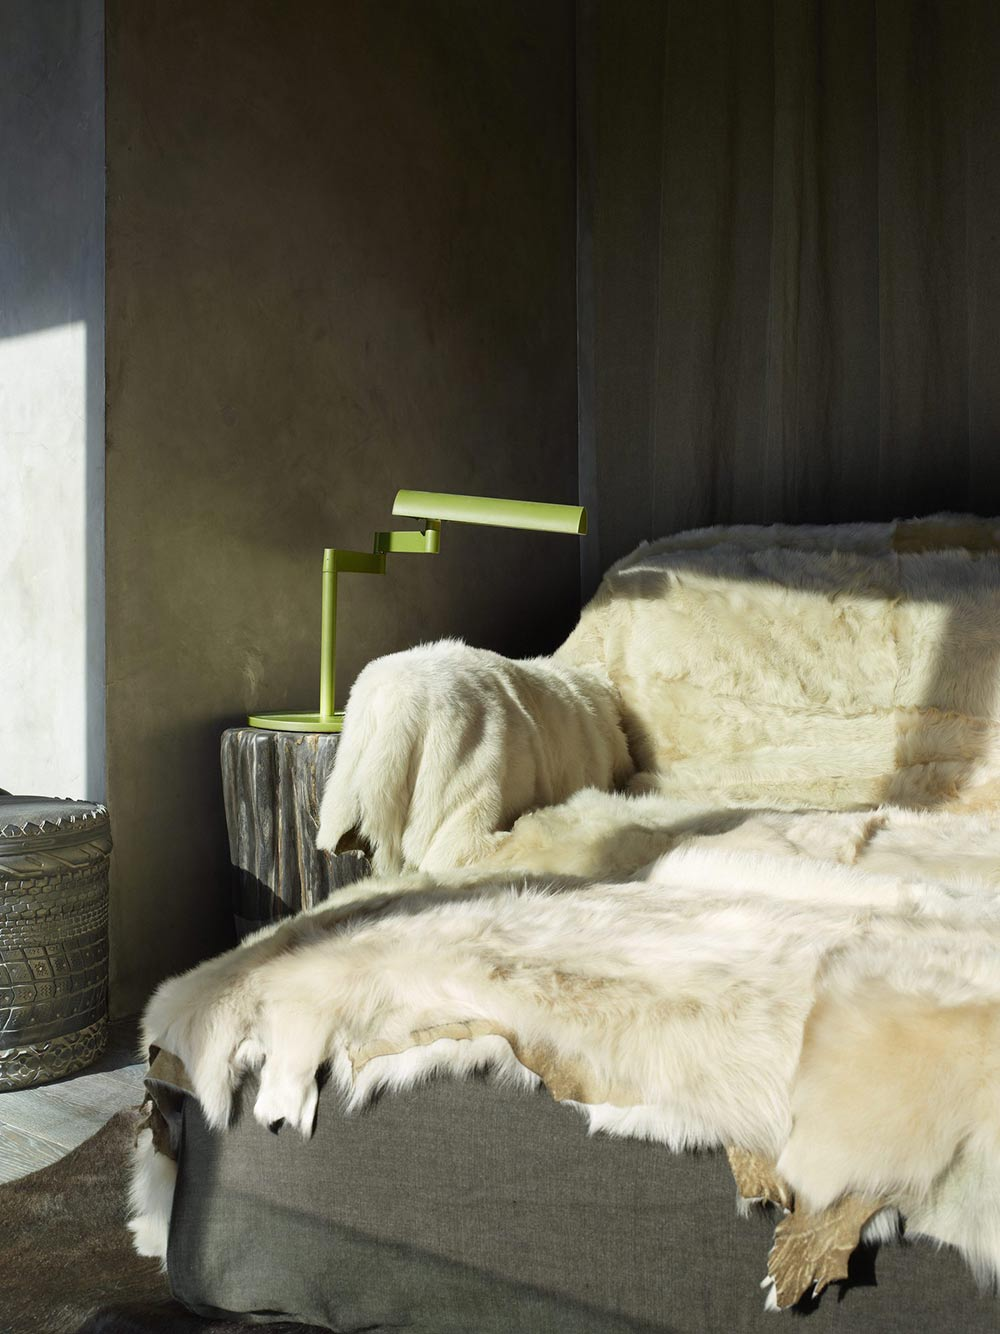 Bed, Bedside Table Light, La Muna, Aspen, Colorado by Oppenheim Architecture + Design